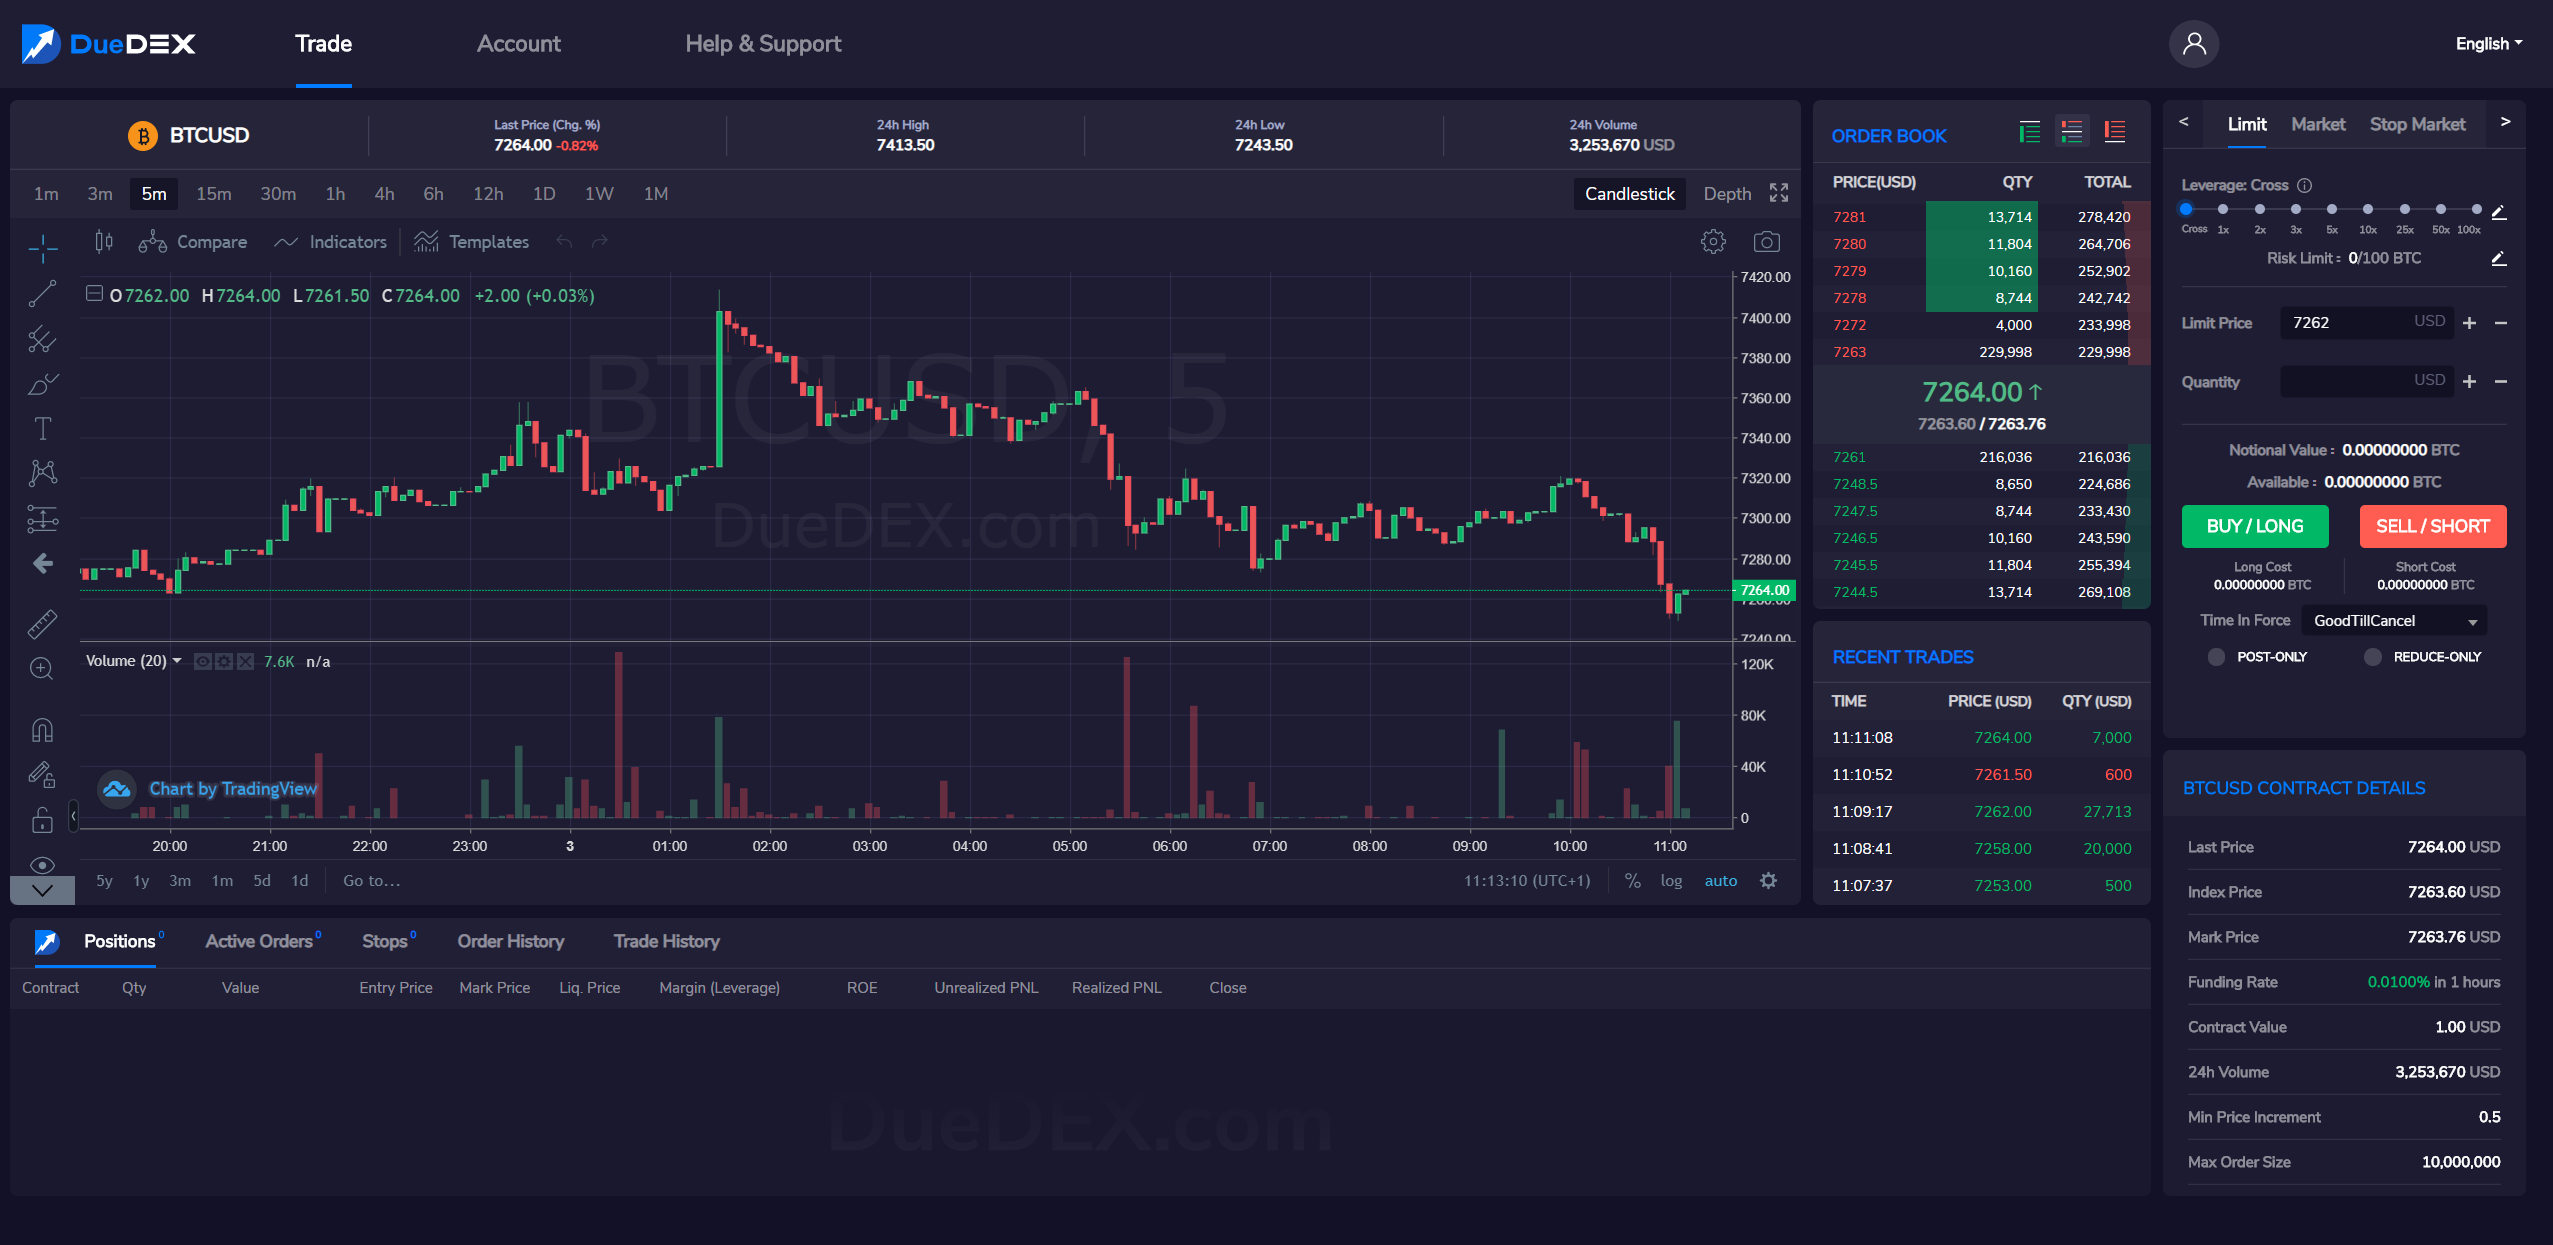 DueDEX Trading View